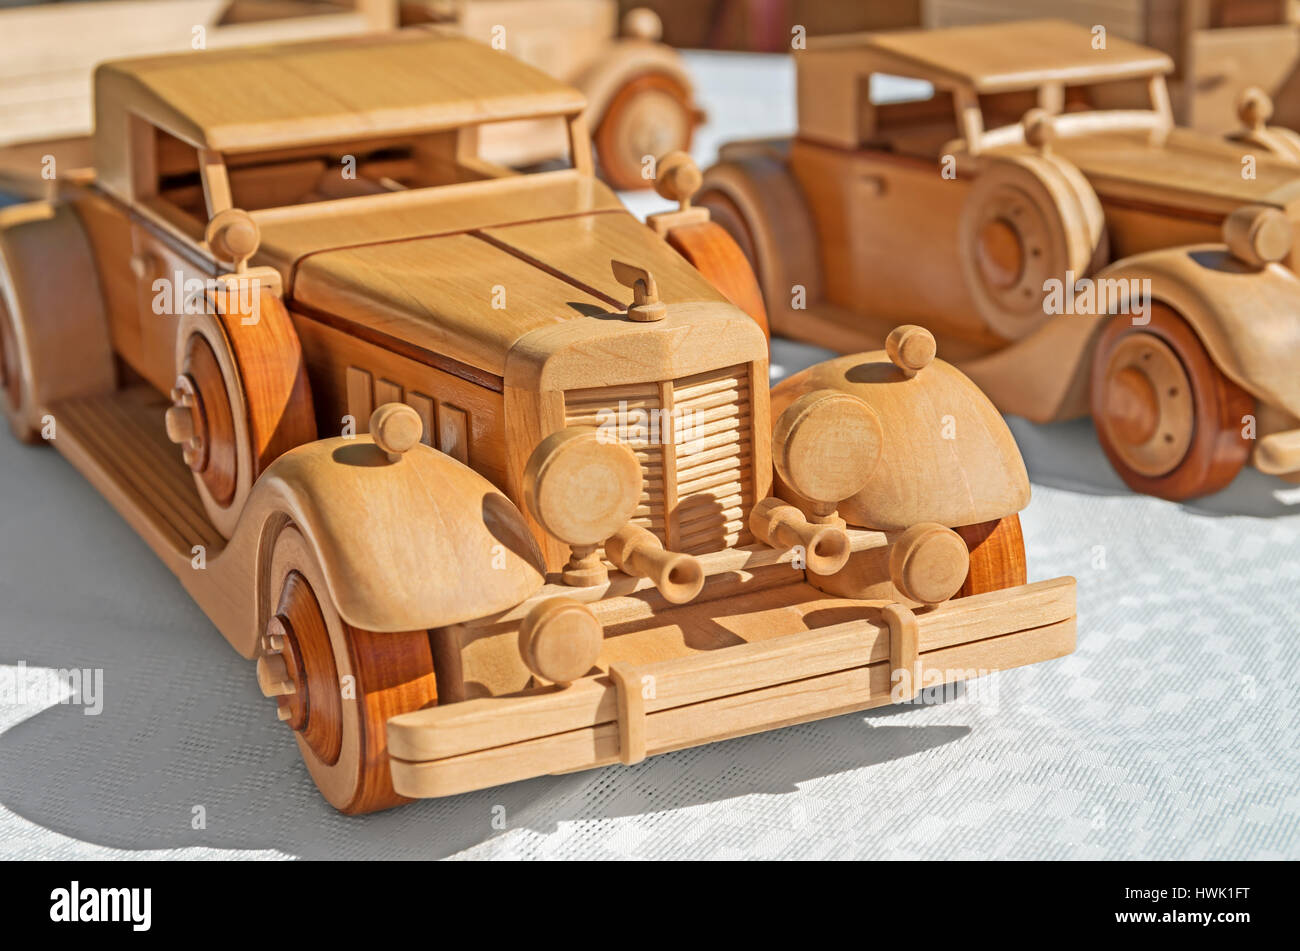 Wooden model of retro executive cars on a white background - Stock Image